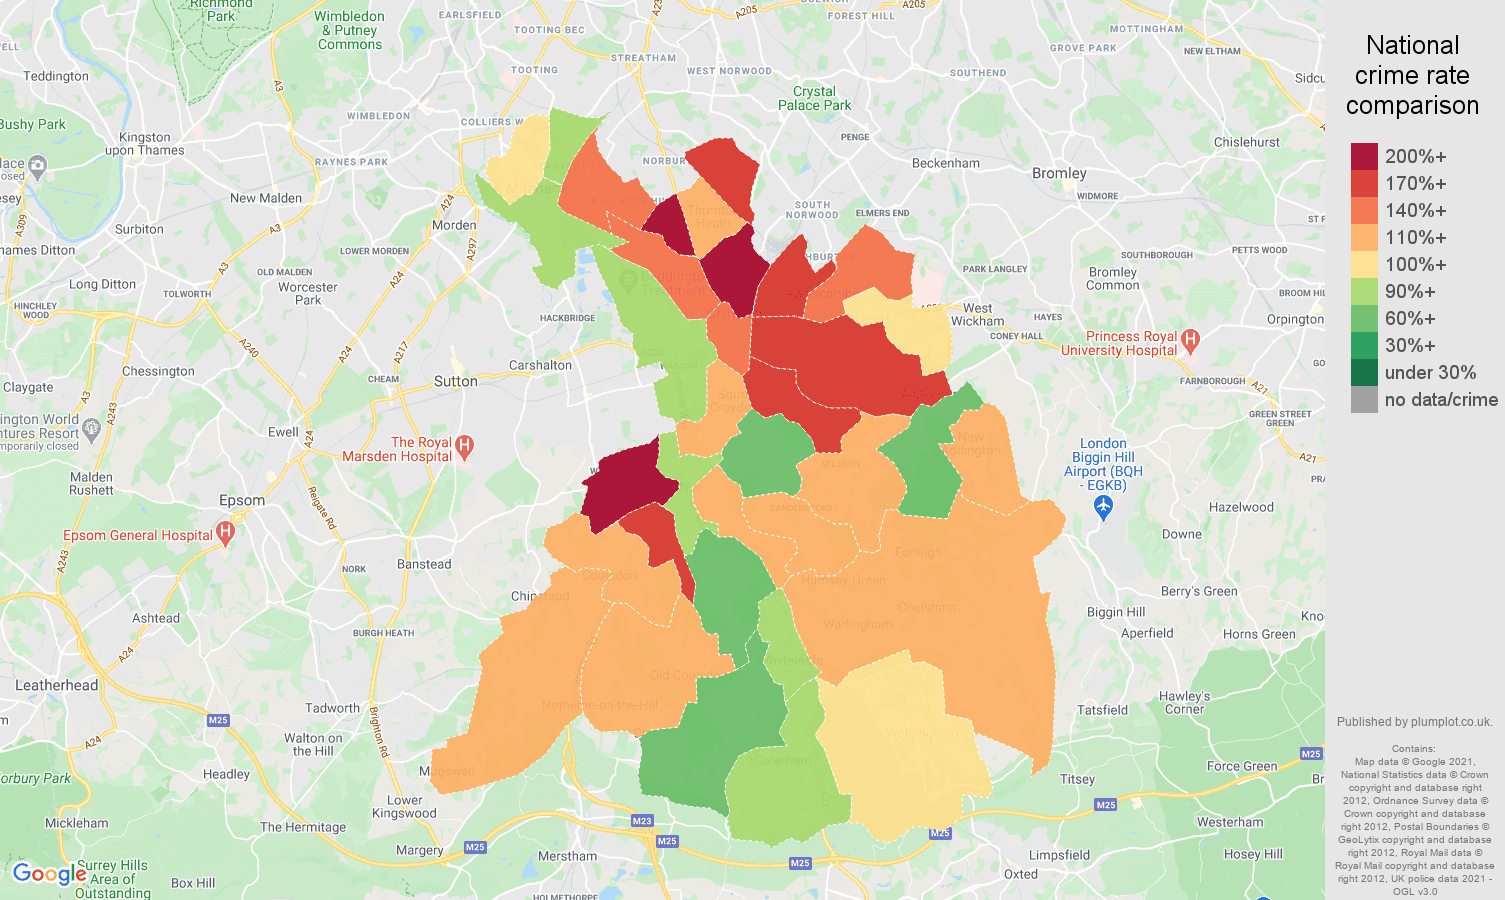 Croydon burglary crime rate comparison map